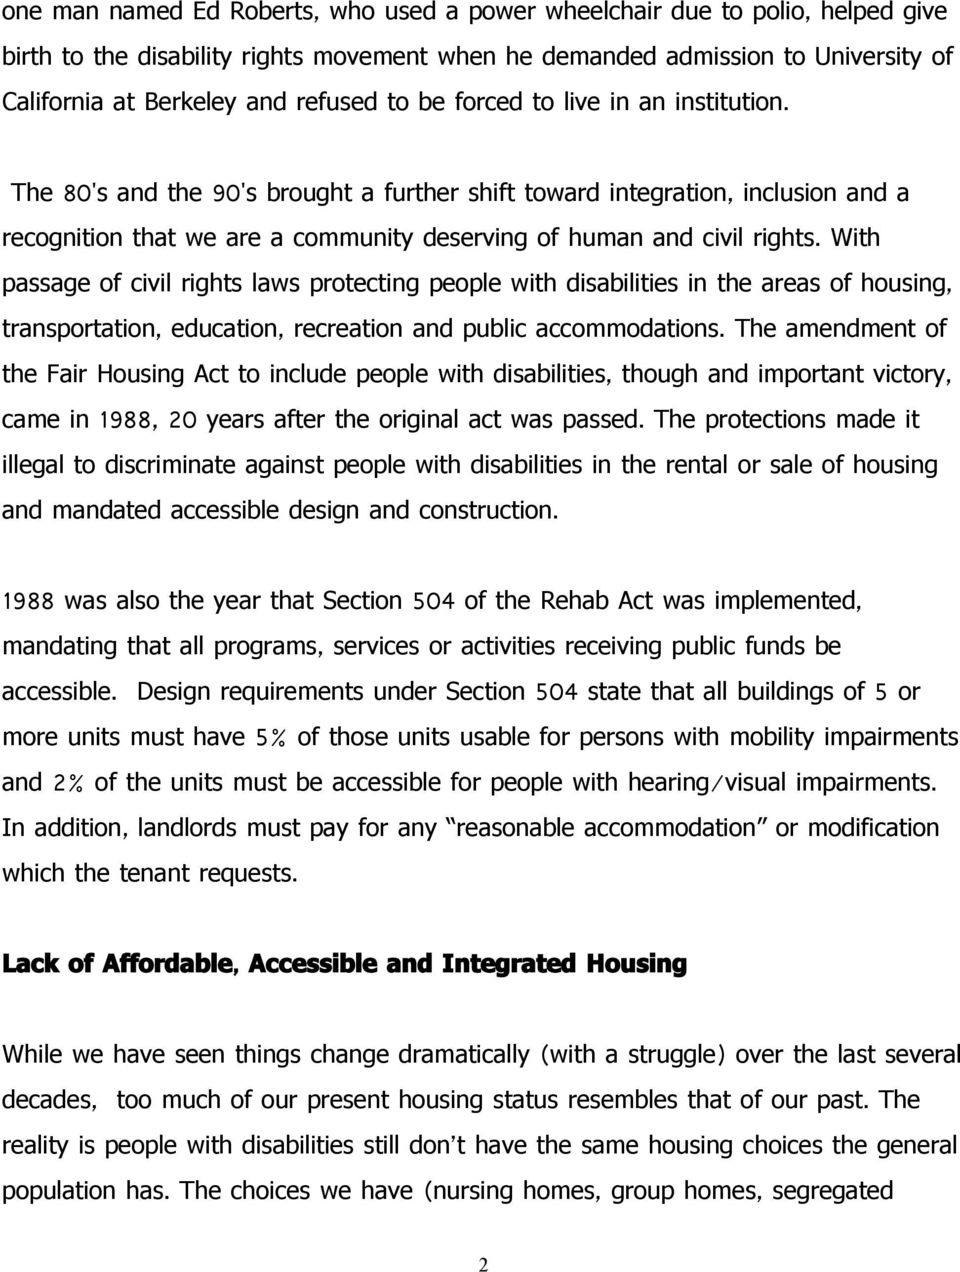 With passage of civil rights laws protecting people with disabilities in the areas of housing, transportation, education, recreation and public accommodations.